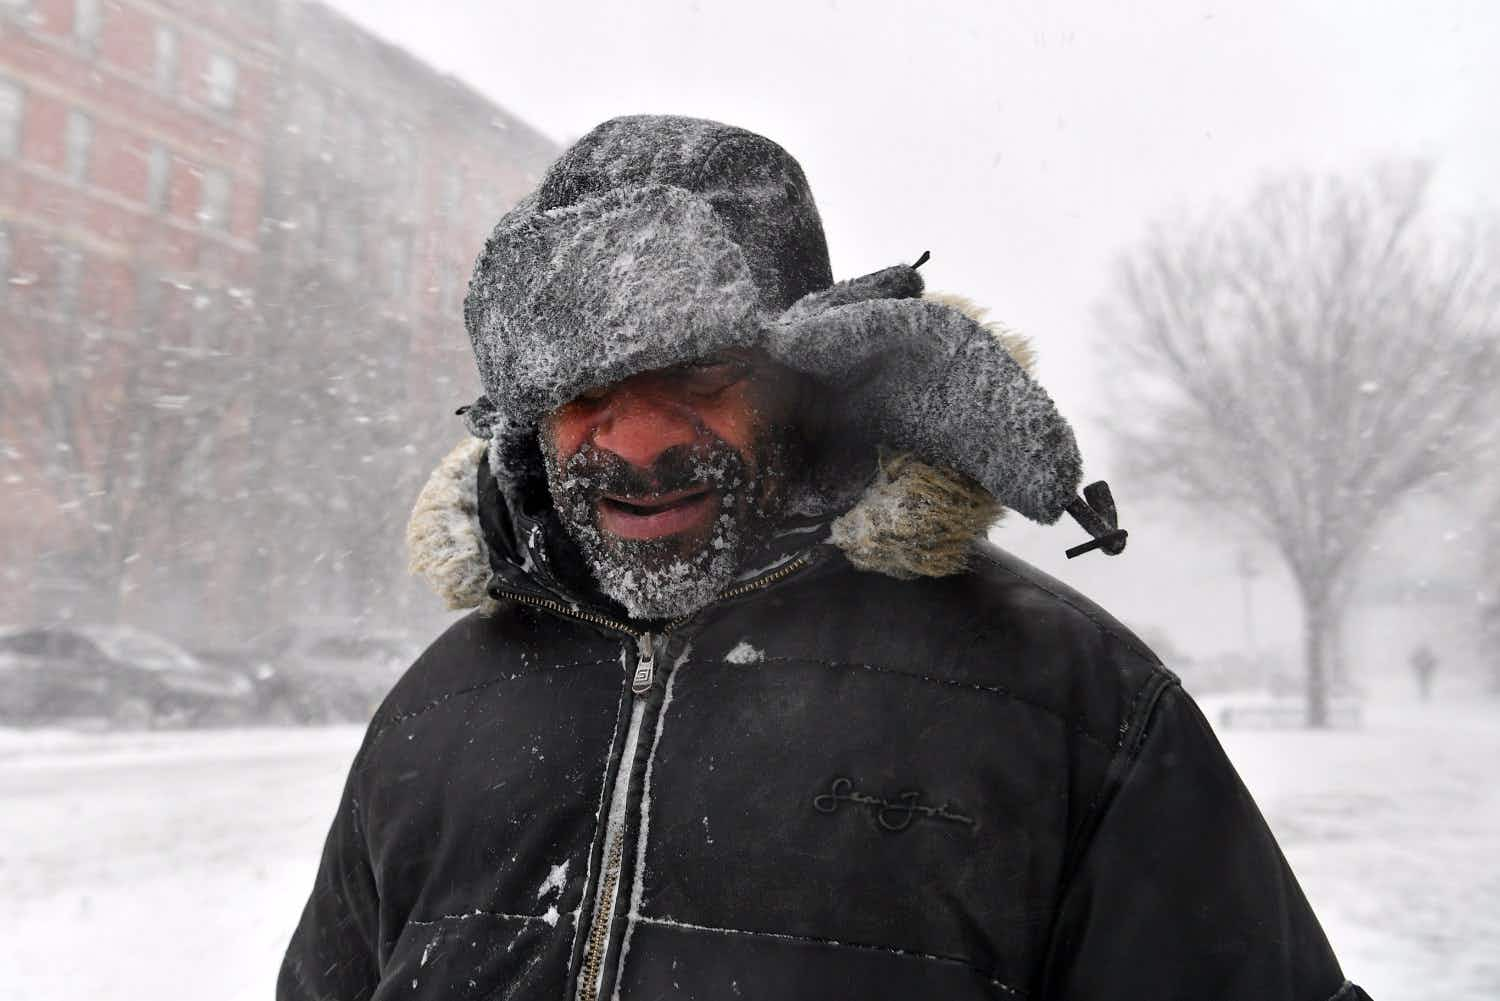 Freezing here, roads melting there - some countries are experiencing extreme weather conditions